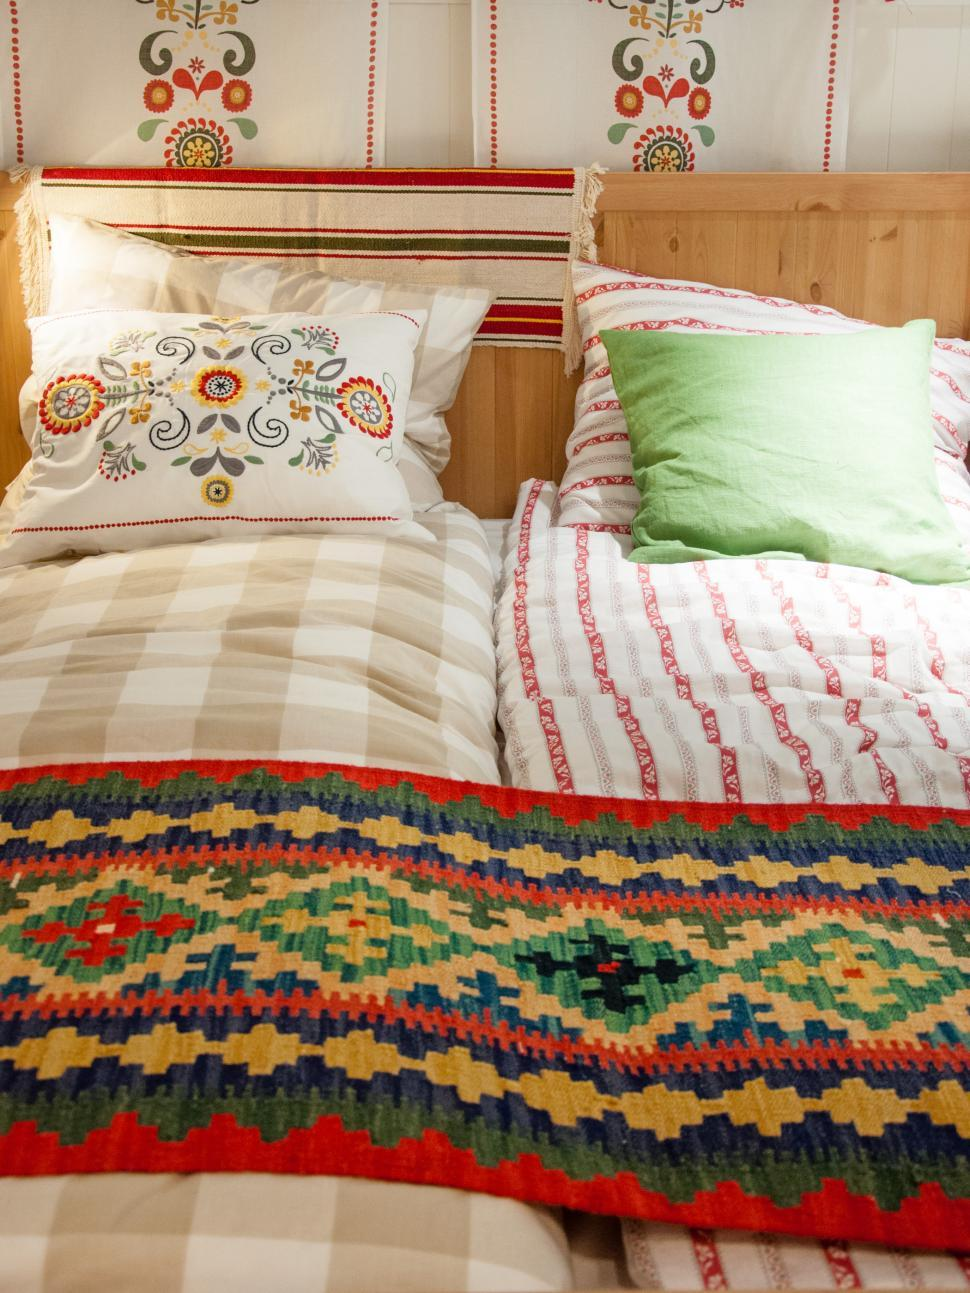 Download Free Stock Photo of country style bedroom bed